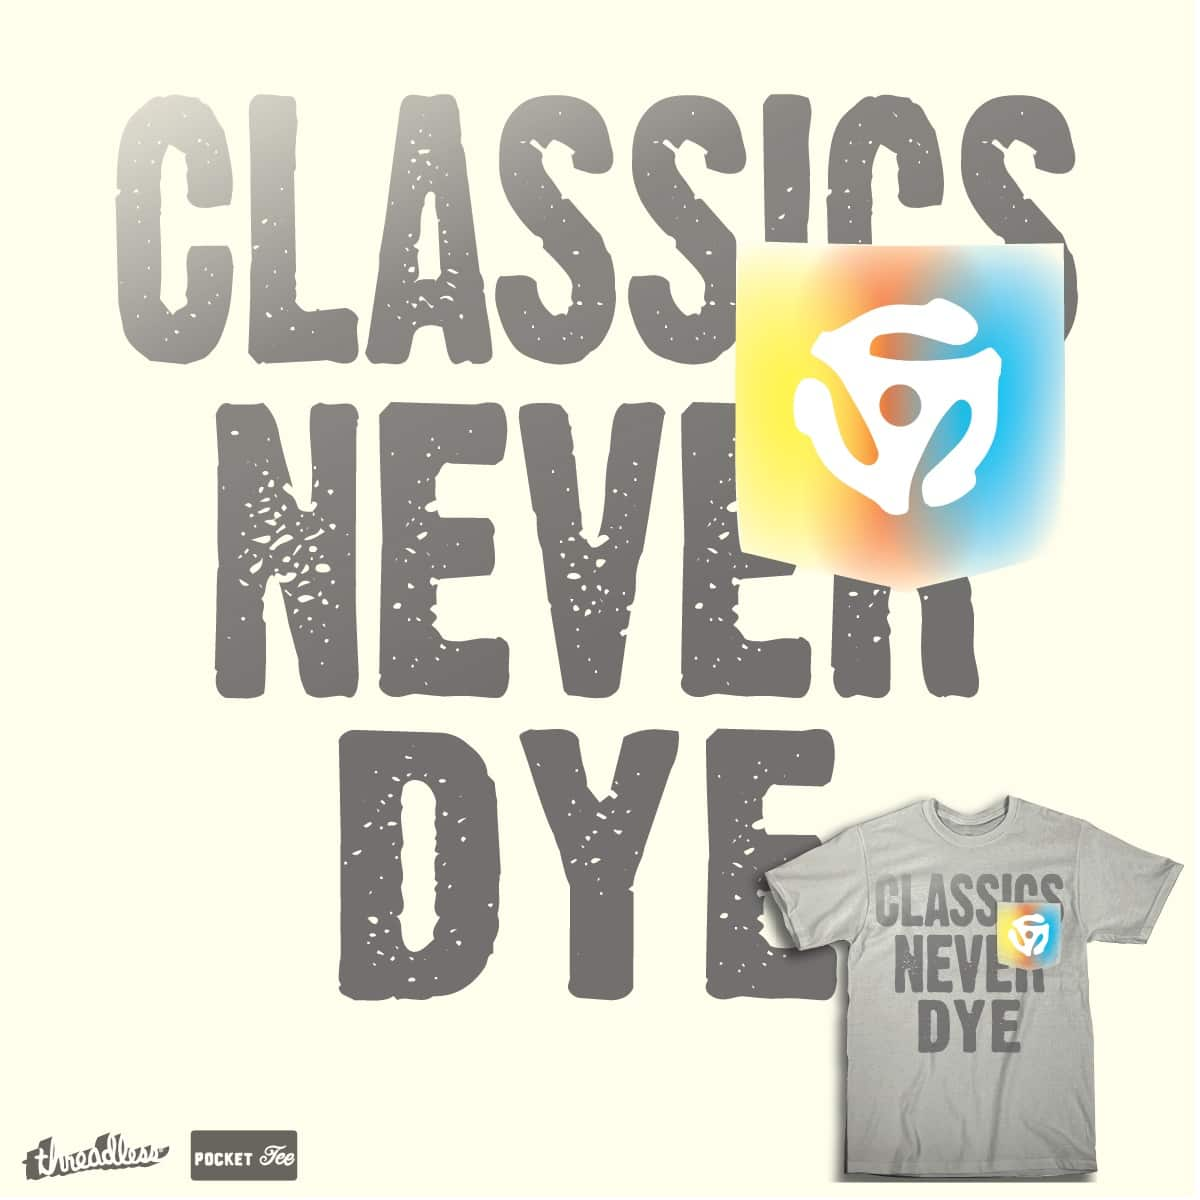 Classics Never Dye by HomesliceTEES on Threadless